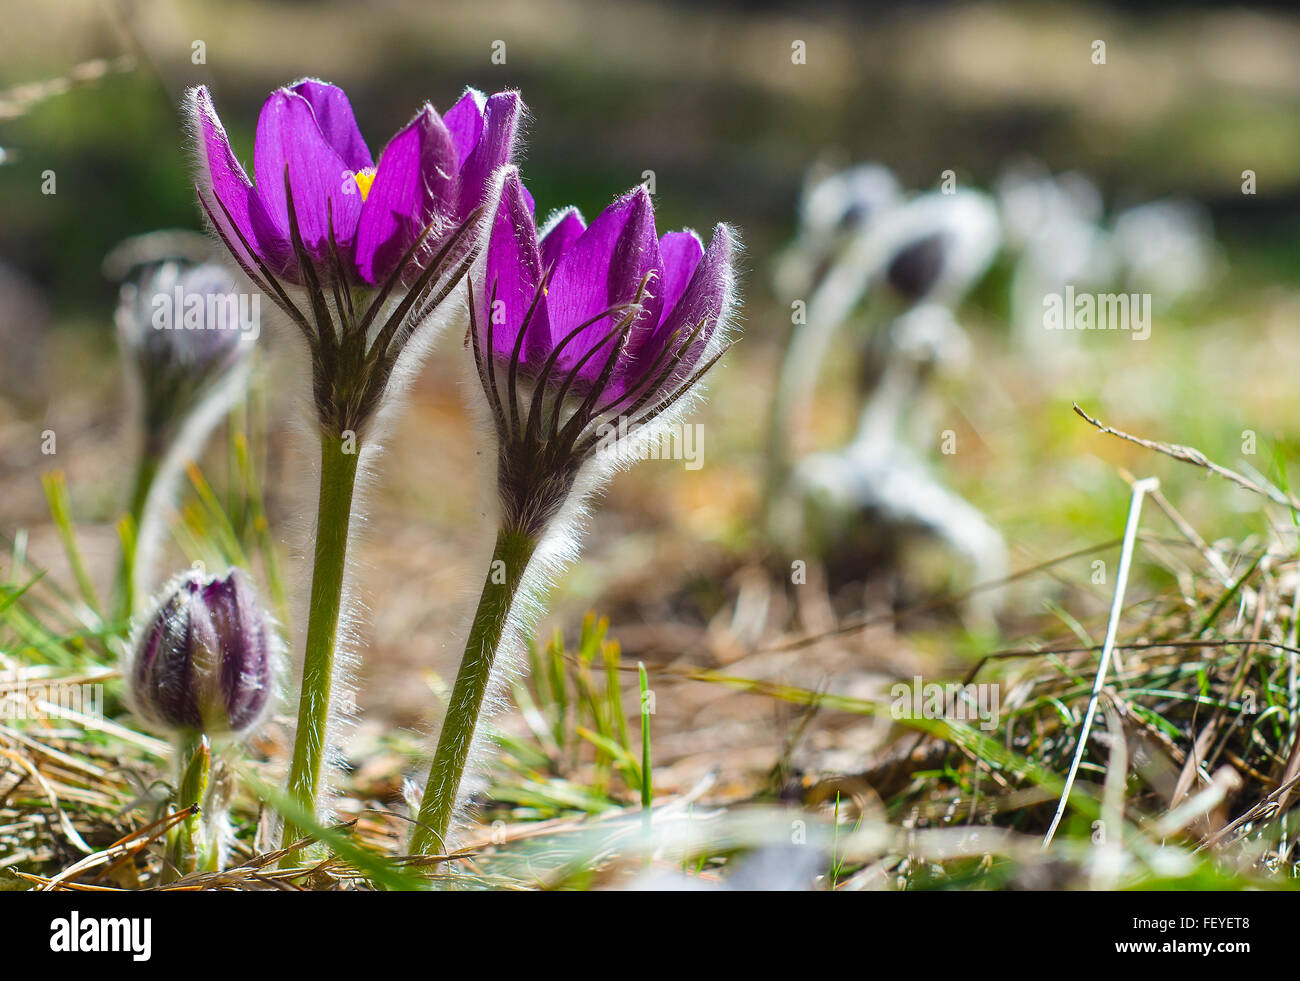 Bright Spring Flowers In A Forest Glade Backlit Stock Photo